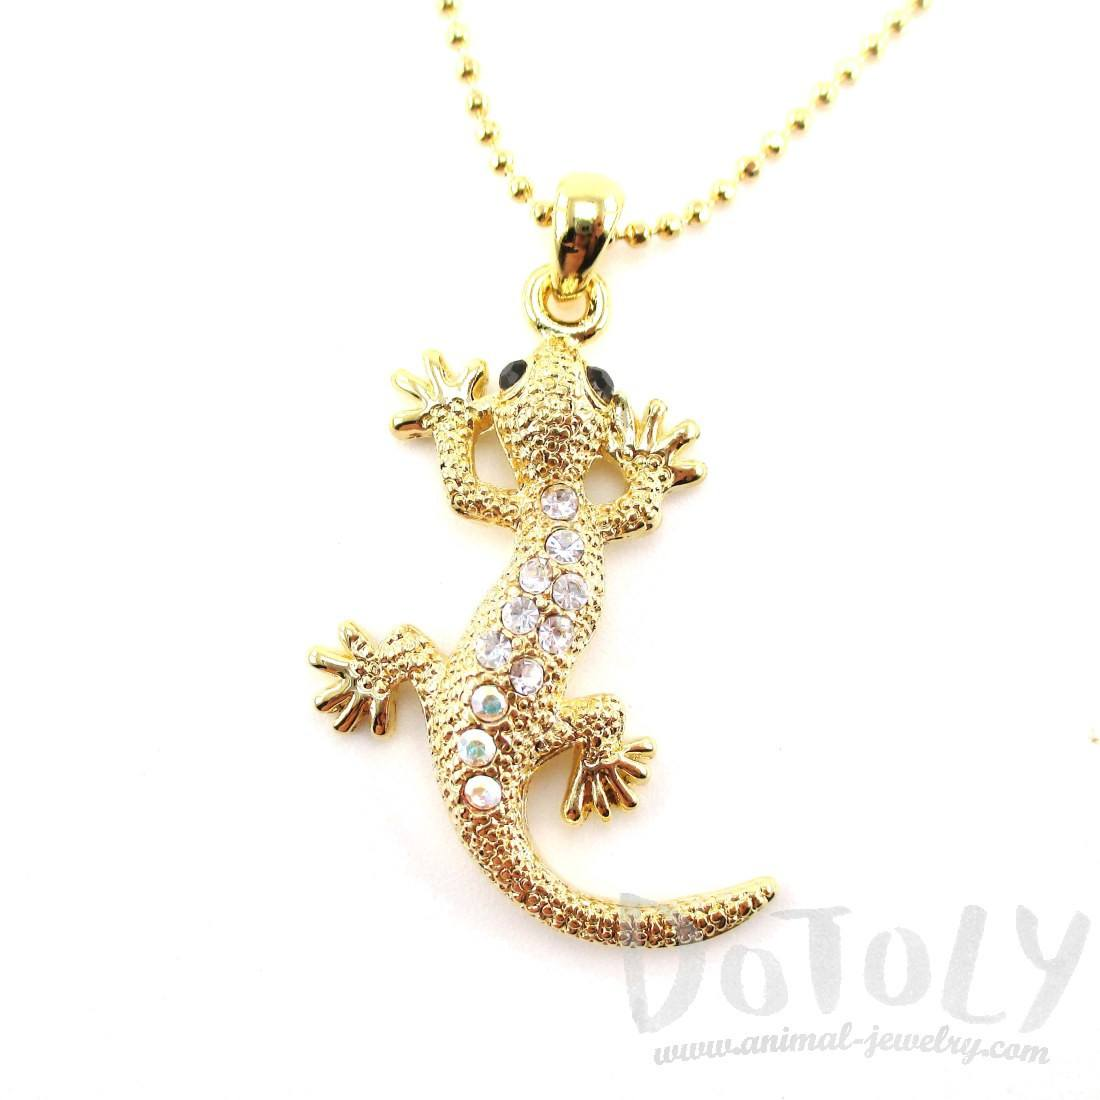 Rhinestone Gecko Lizard Shaped Pendant Necklace in Gold